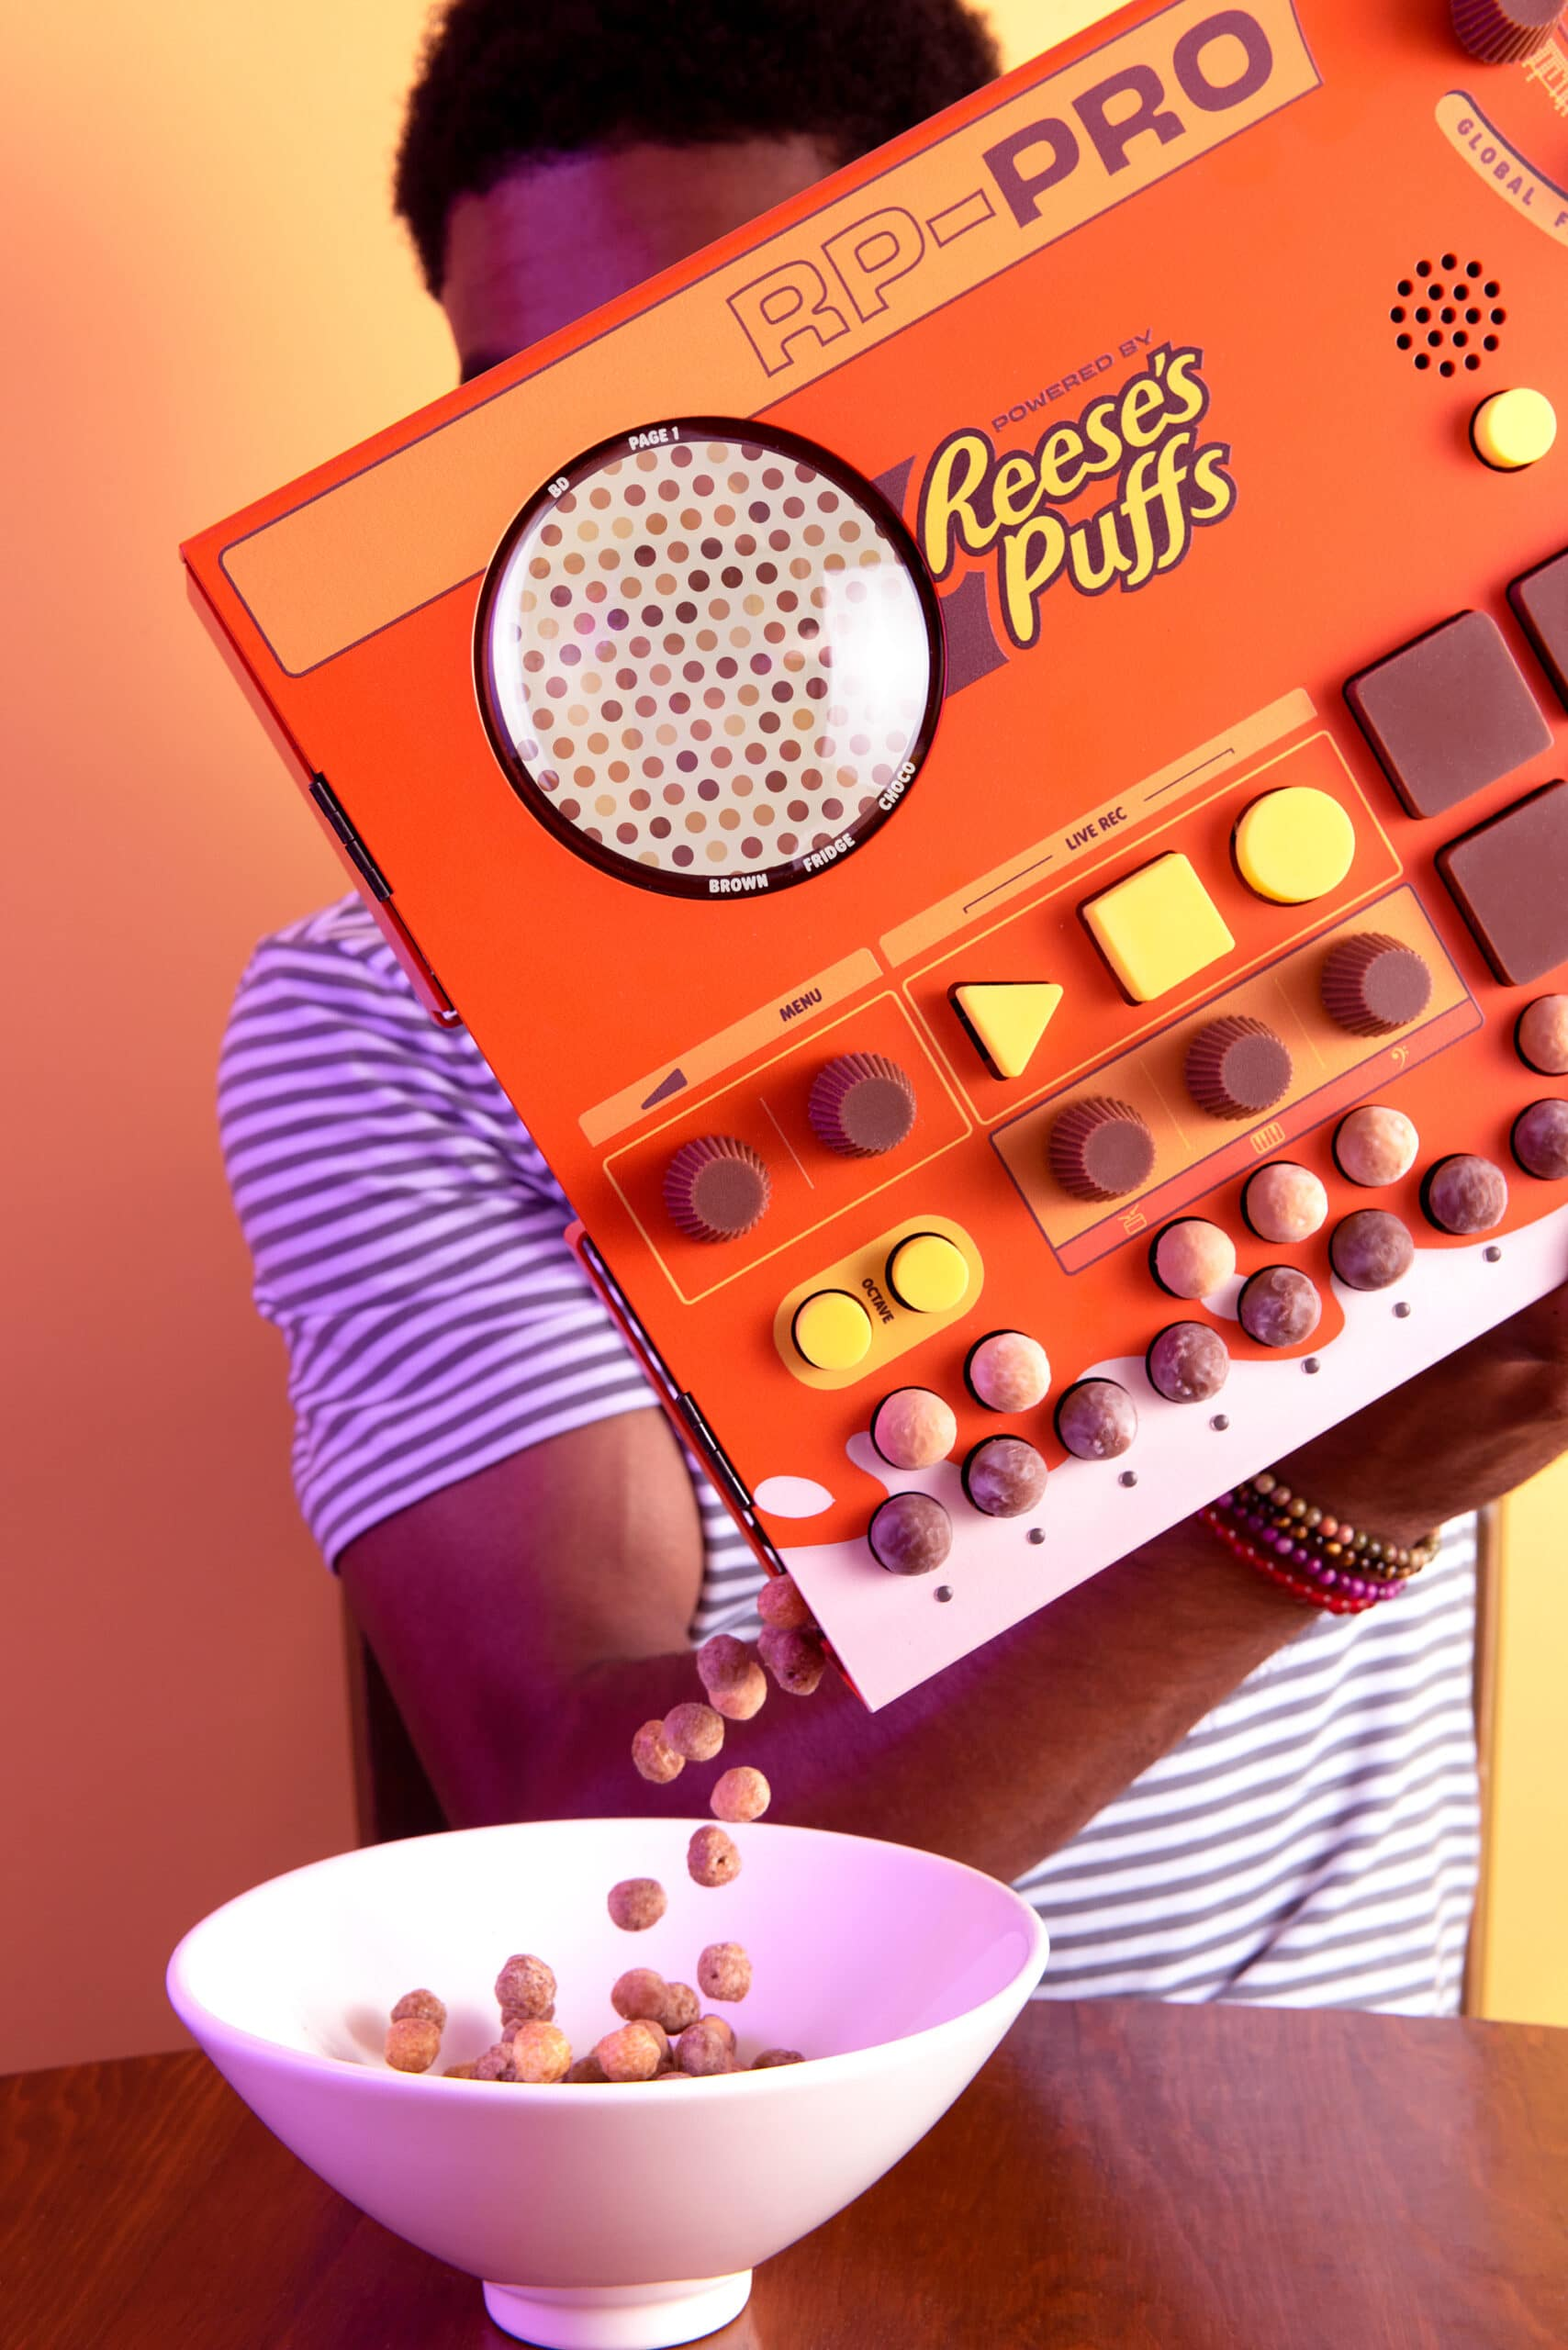 These Reese's Puffs cereal boxes let fans create their own music tracks 20